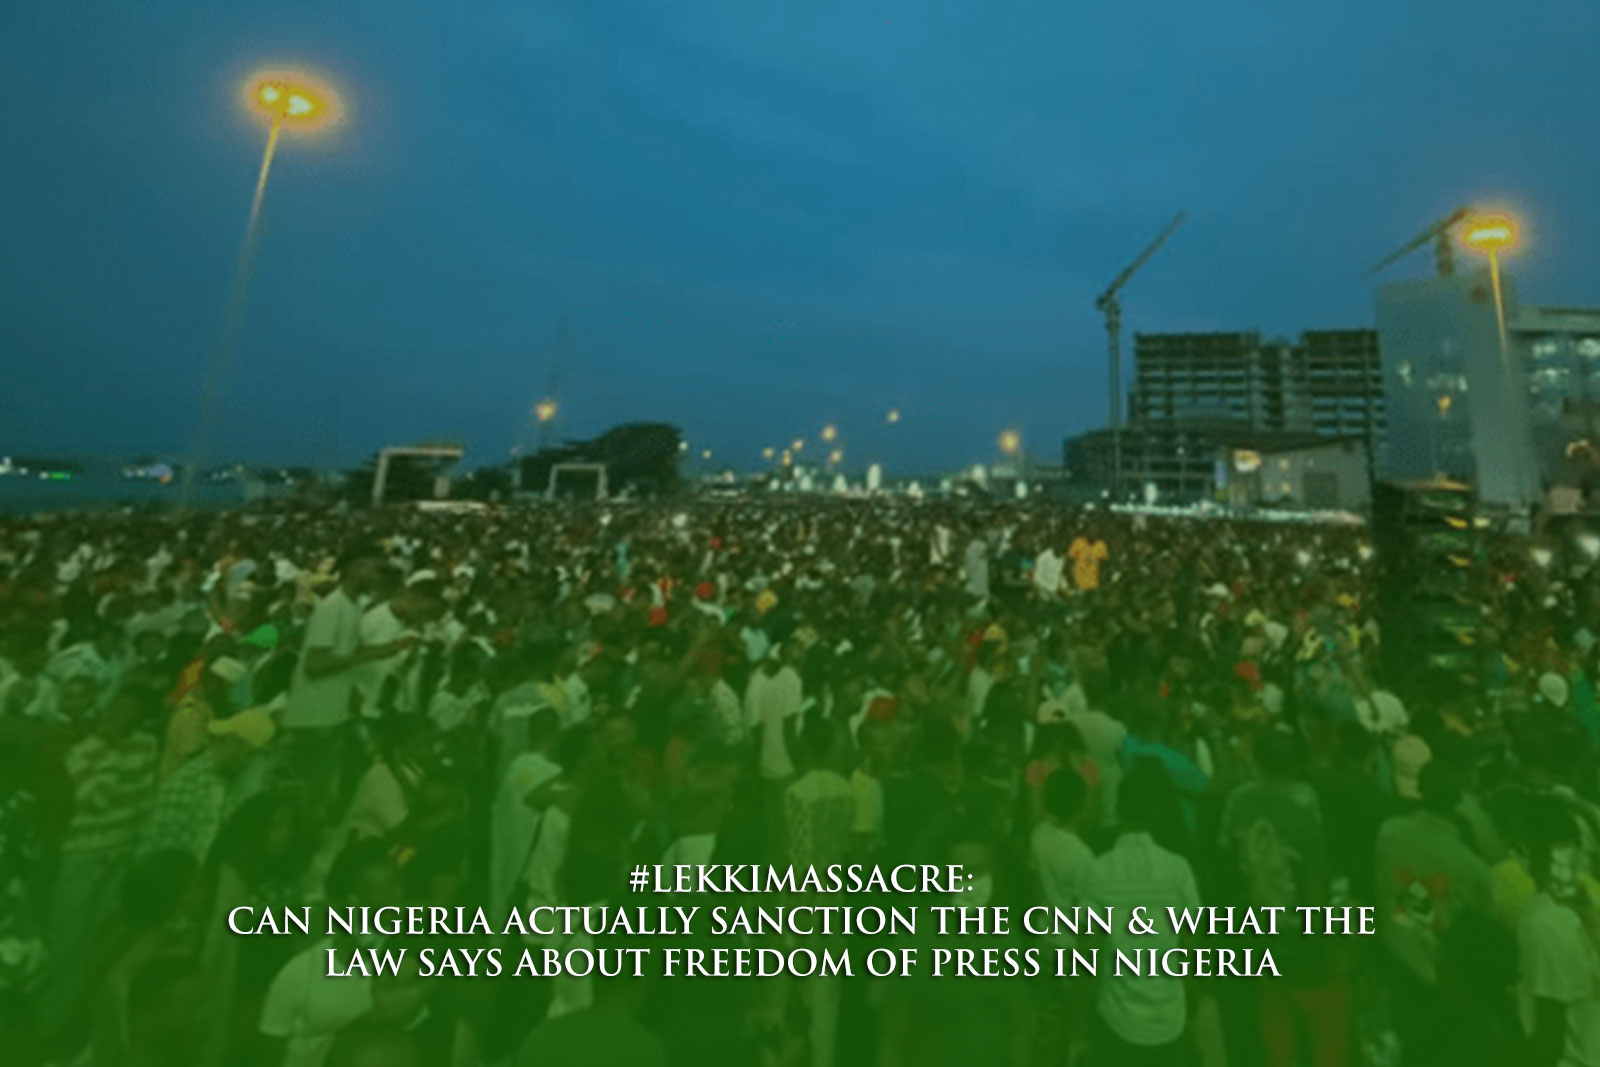 LEKKI MASSACRE CAN NIGERIA ACTUALLY SANCTION THE CNN & WHAT THE LAW SAYS ABOUT FREEDOM OF PRESS IN NIGERIA